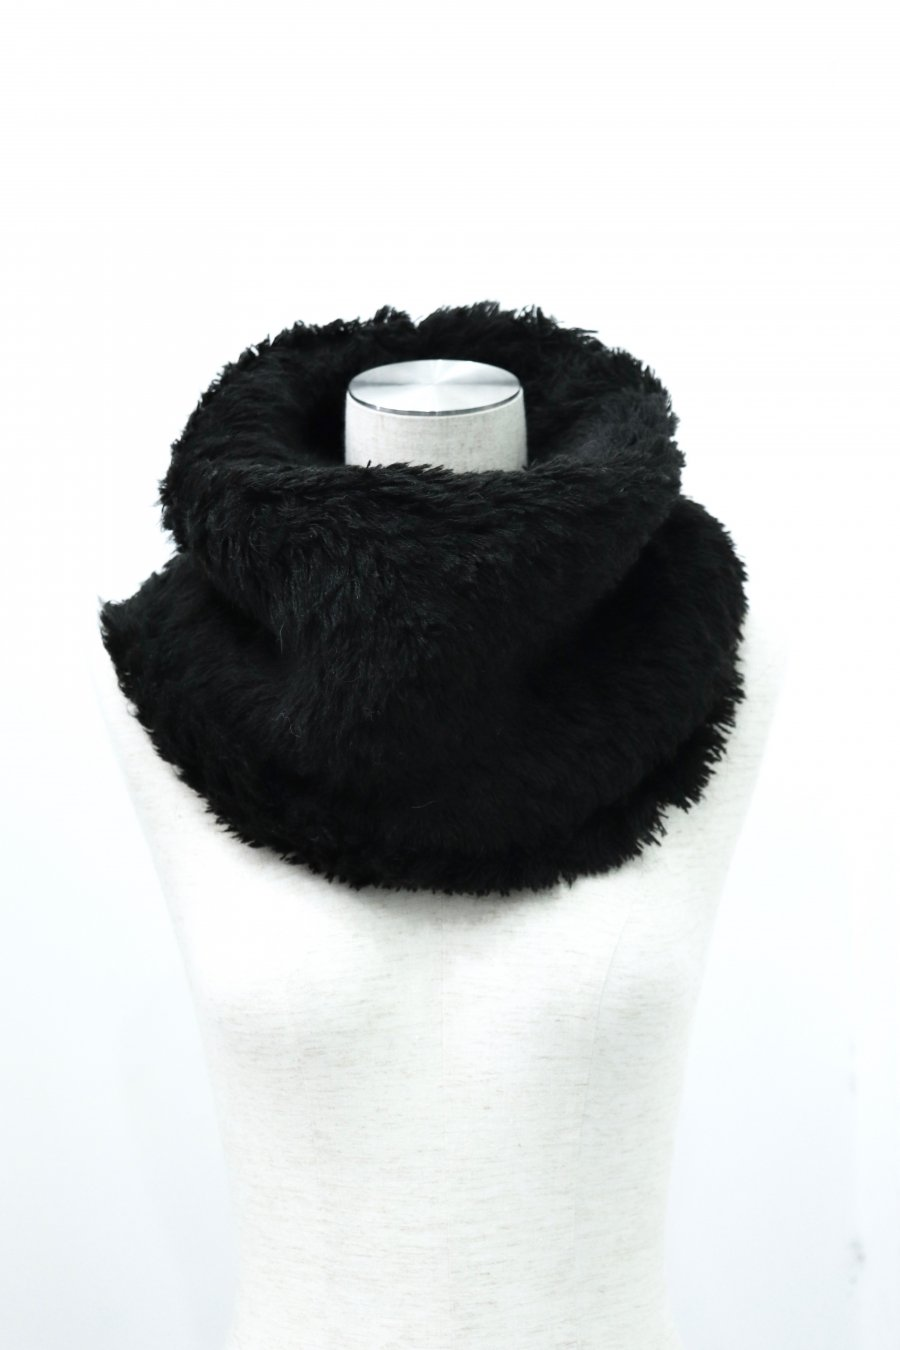 LITTLEBIG  SNOOD(BLACK)<img class='new_mark_img2' src='https://img.shop-pro.jp/img/new/icons15.gif' style='border:none;display:inline;margin:0px;padding:0px;width:auto;' />